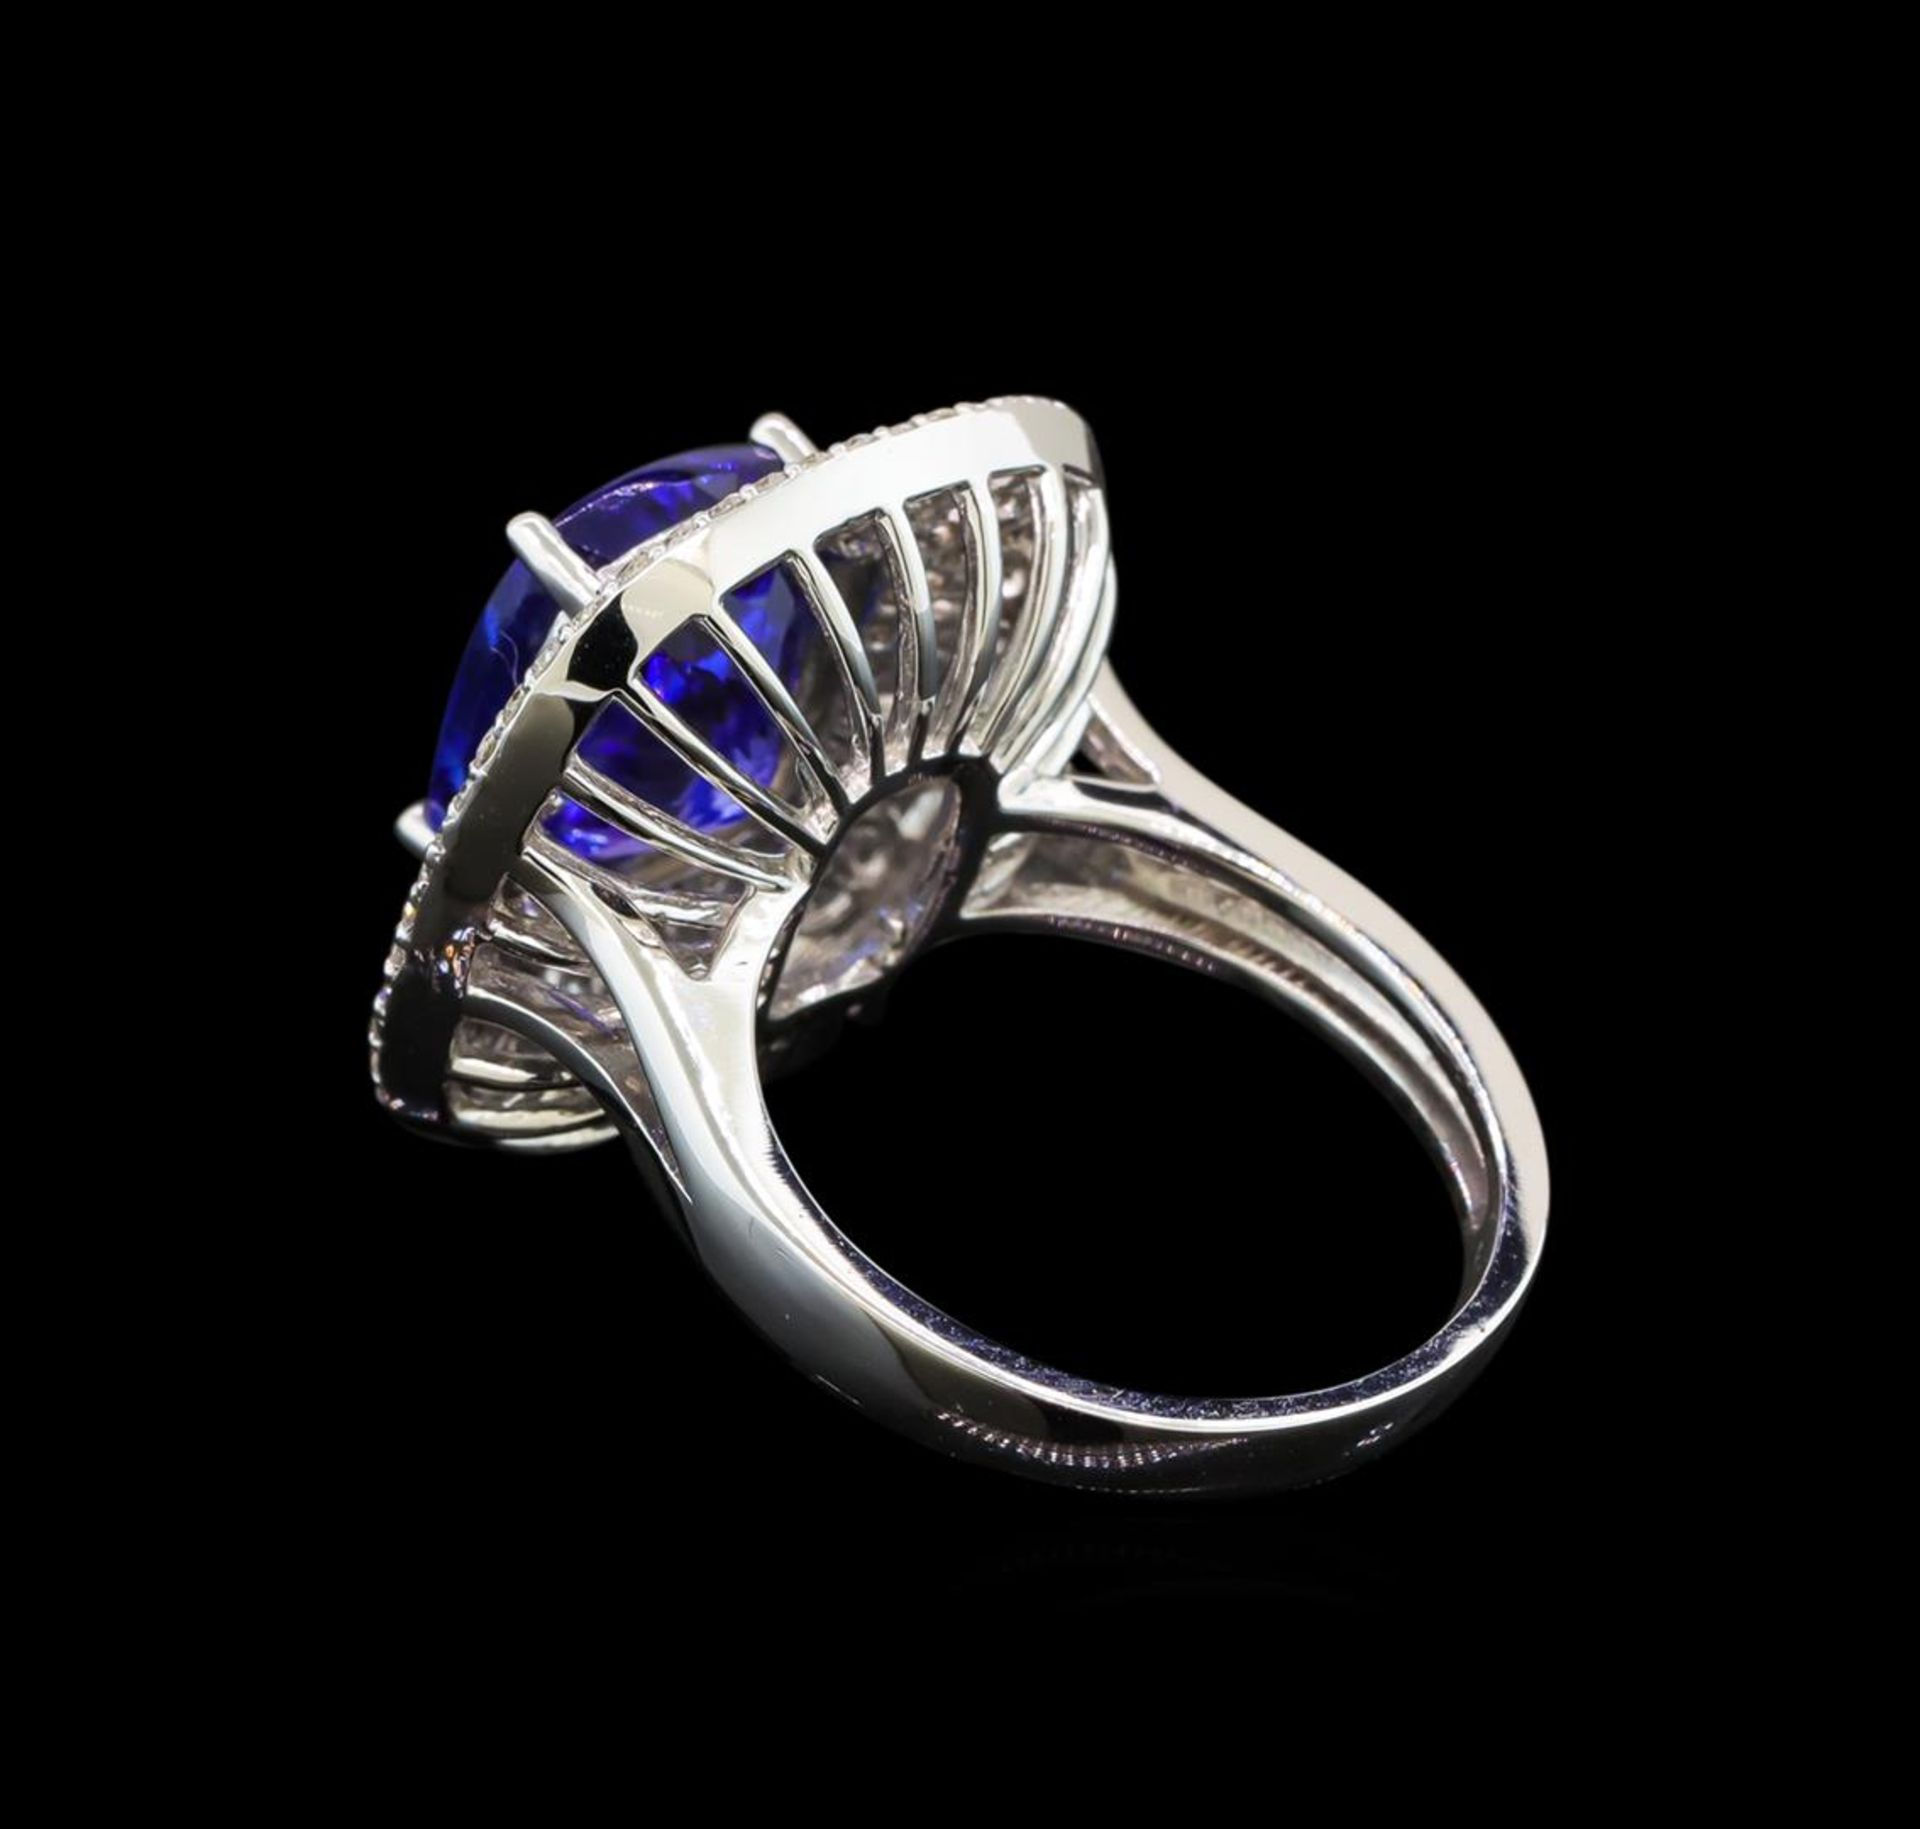 14KT White Gold 5.29 ctw Tanzanite and Diamond Ring - Image 3 of 5